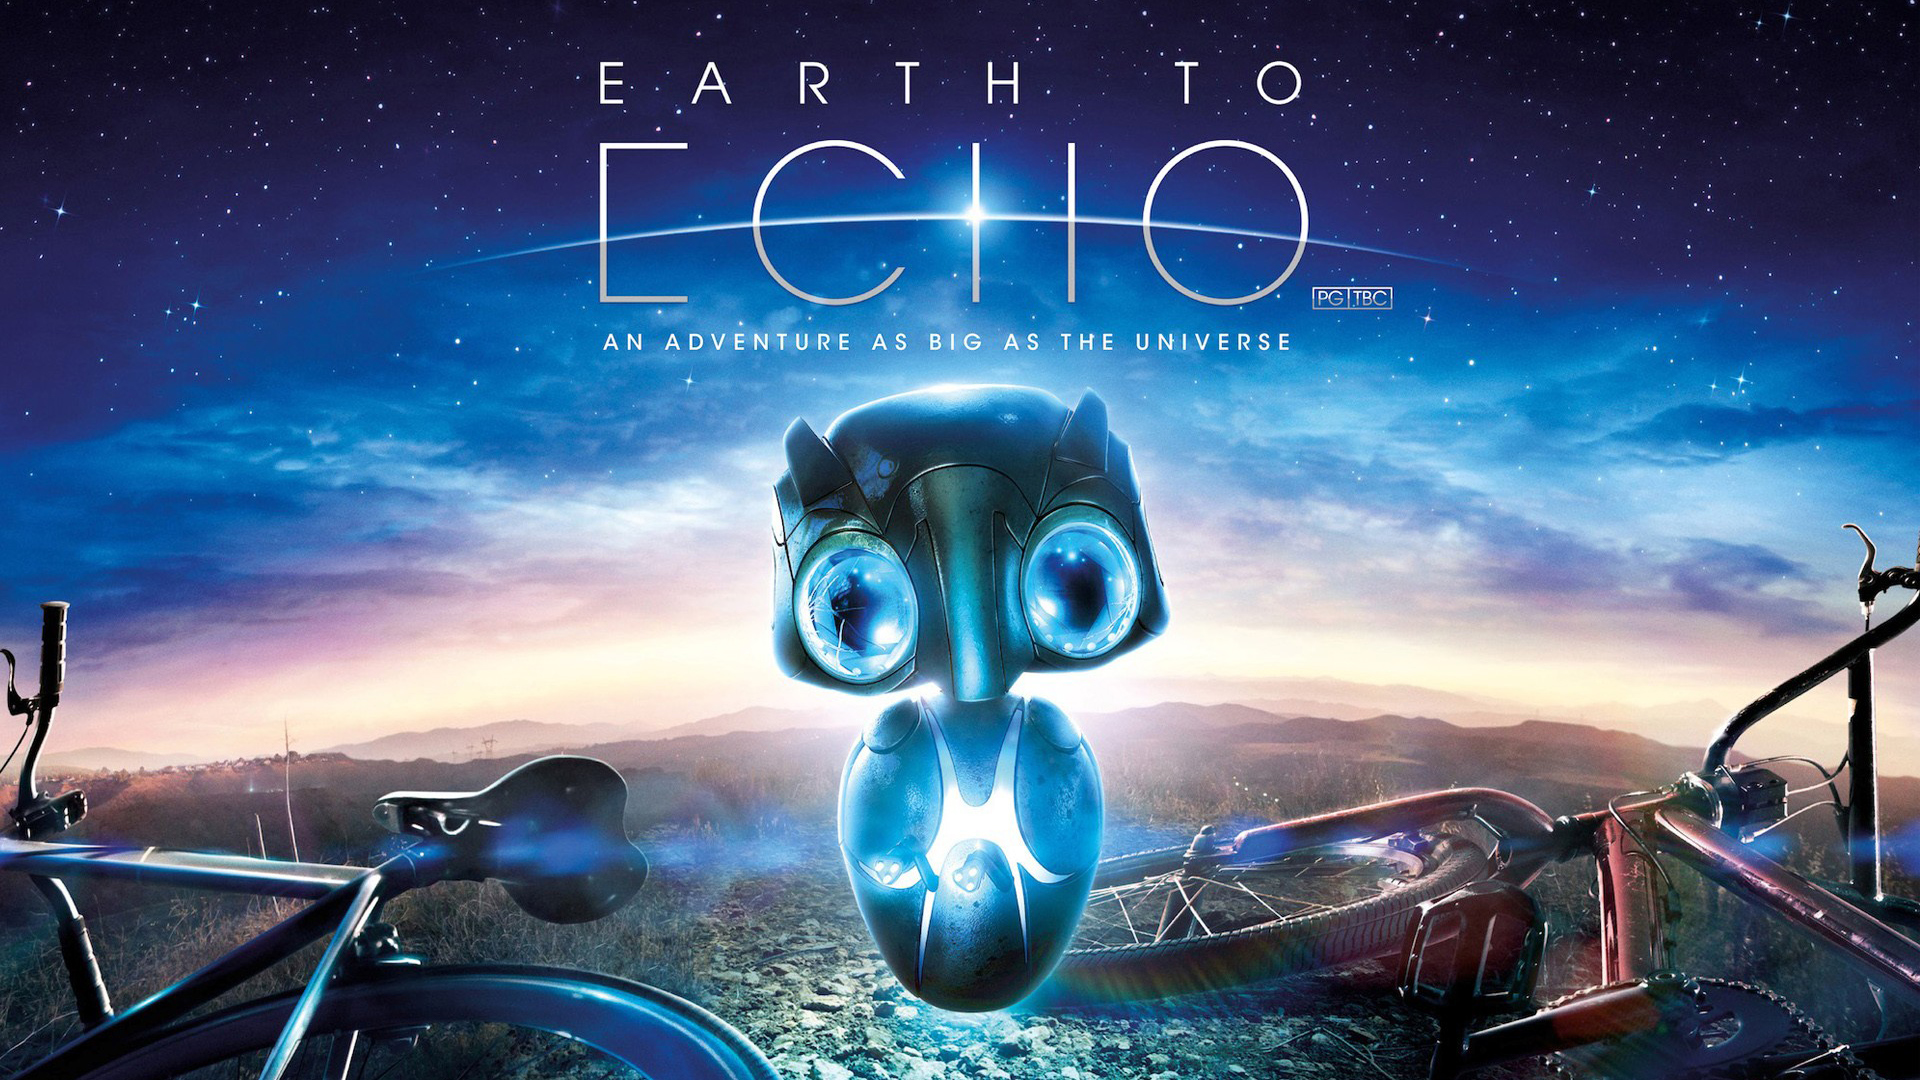 http://2.bp.blogspot.com/-fOOzbxBVVvE/U6KH3aKavAI/AAAAAAAALVg/YzMXd680Mt0/s2560/earth-to-echo-movie-2014-1920x1080.jpg